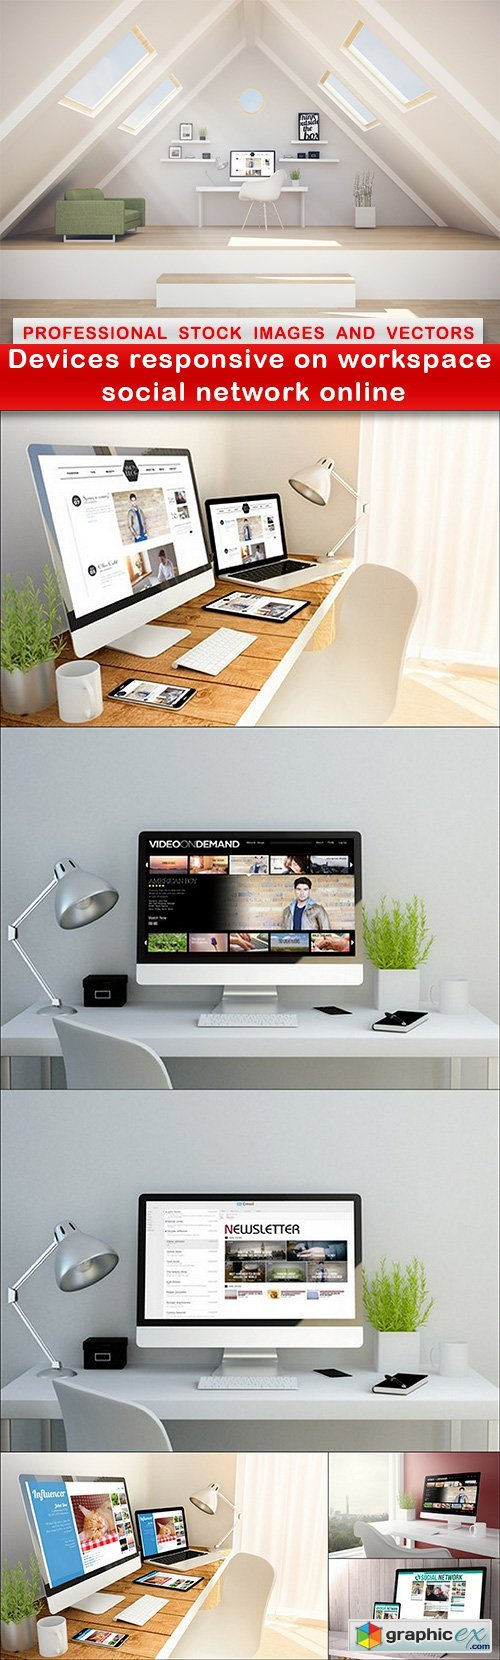 Devices responsive on workspace social network online - 7 UHQ JPEG